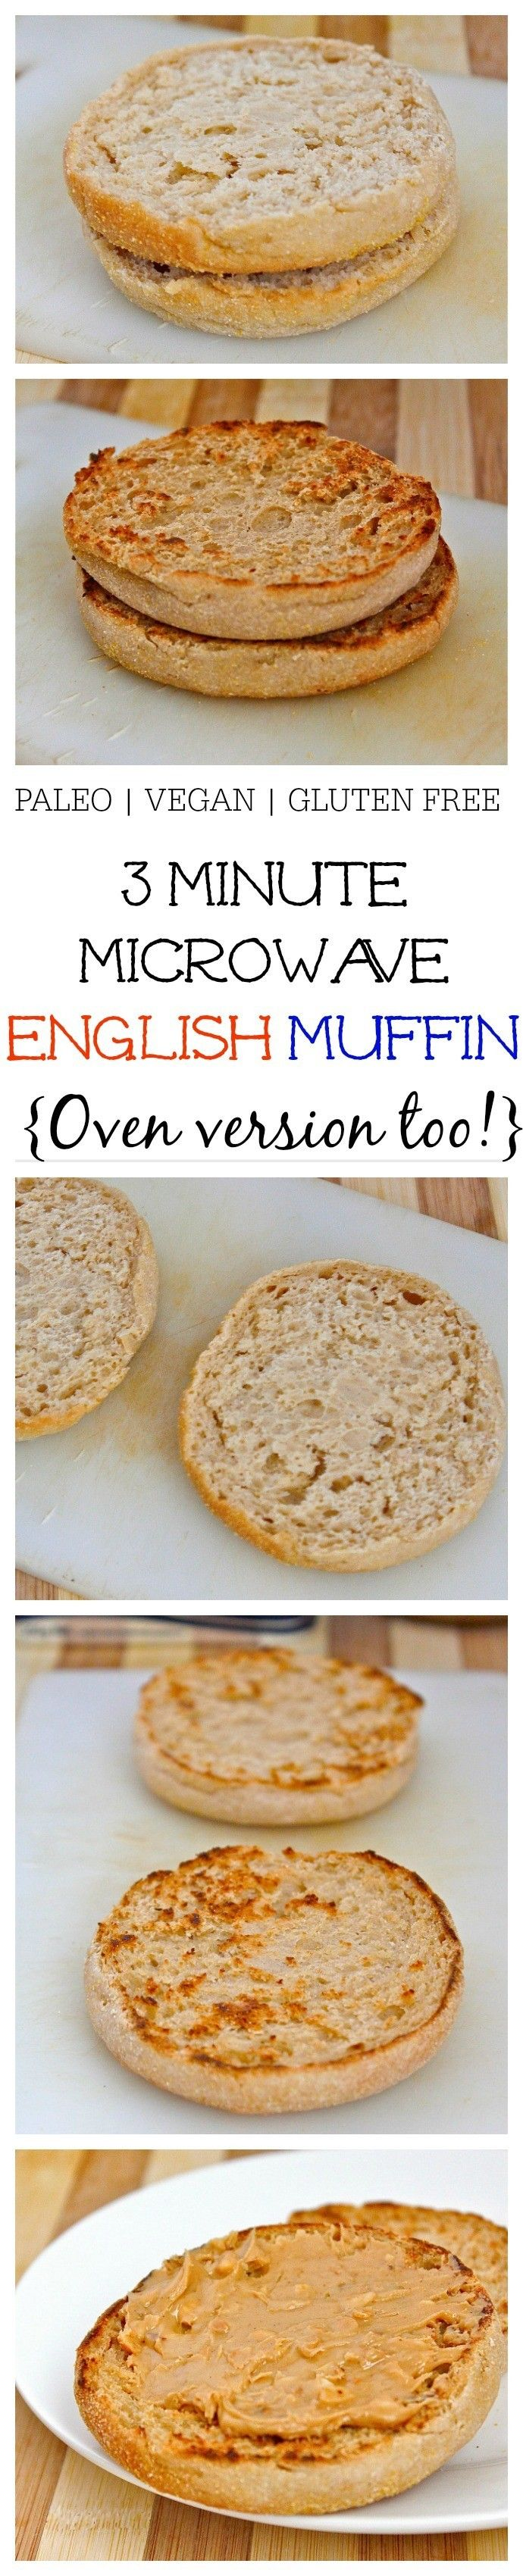 3 Minute Microwave English Muffin (Paleo, Vegan AND gluten free!)- Just THREE minutes and a simple ingredient list is needed to whip up this microwave English muffin which is JUST like the real deal! There are three versions- Paleo, Vegan and Gluten Free to suit most dietary lifestyles- For those without a microwave, there is an oven friendly version! @thebigmansworld - thebigmansworld.com